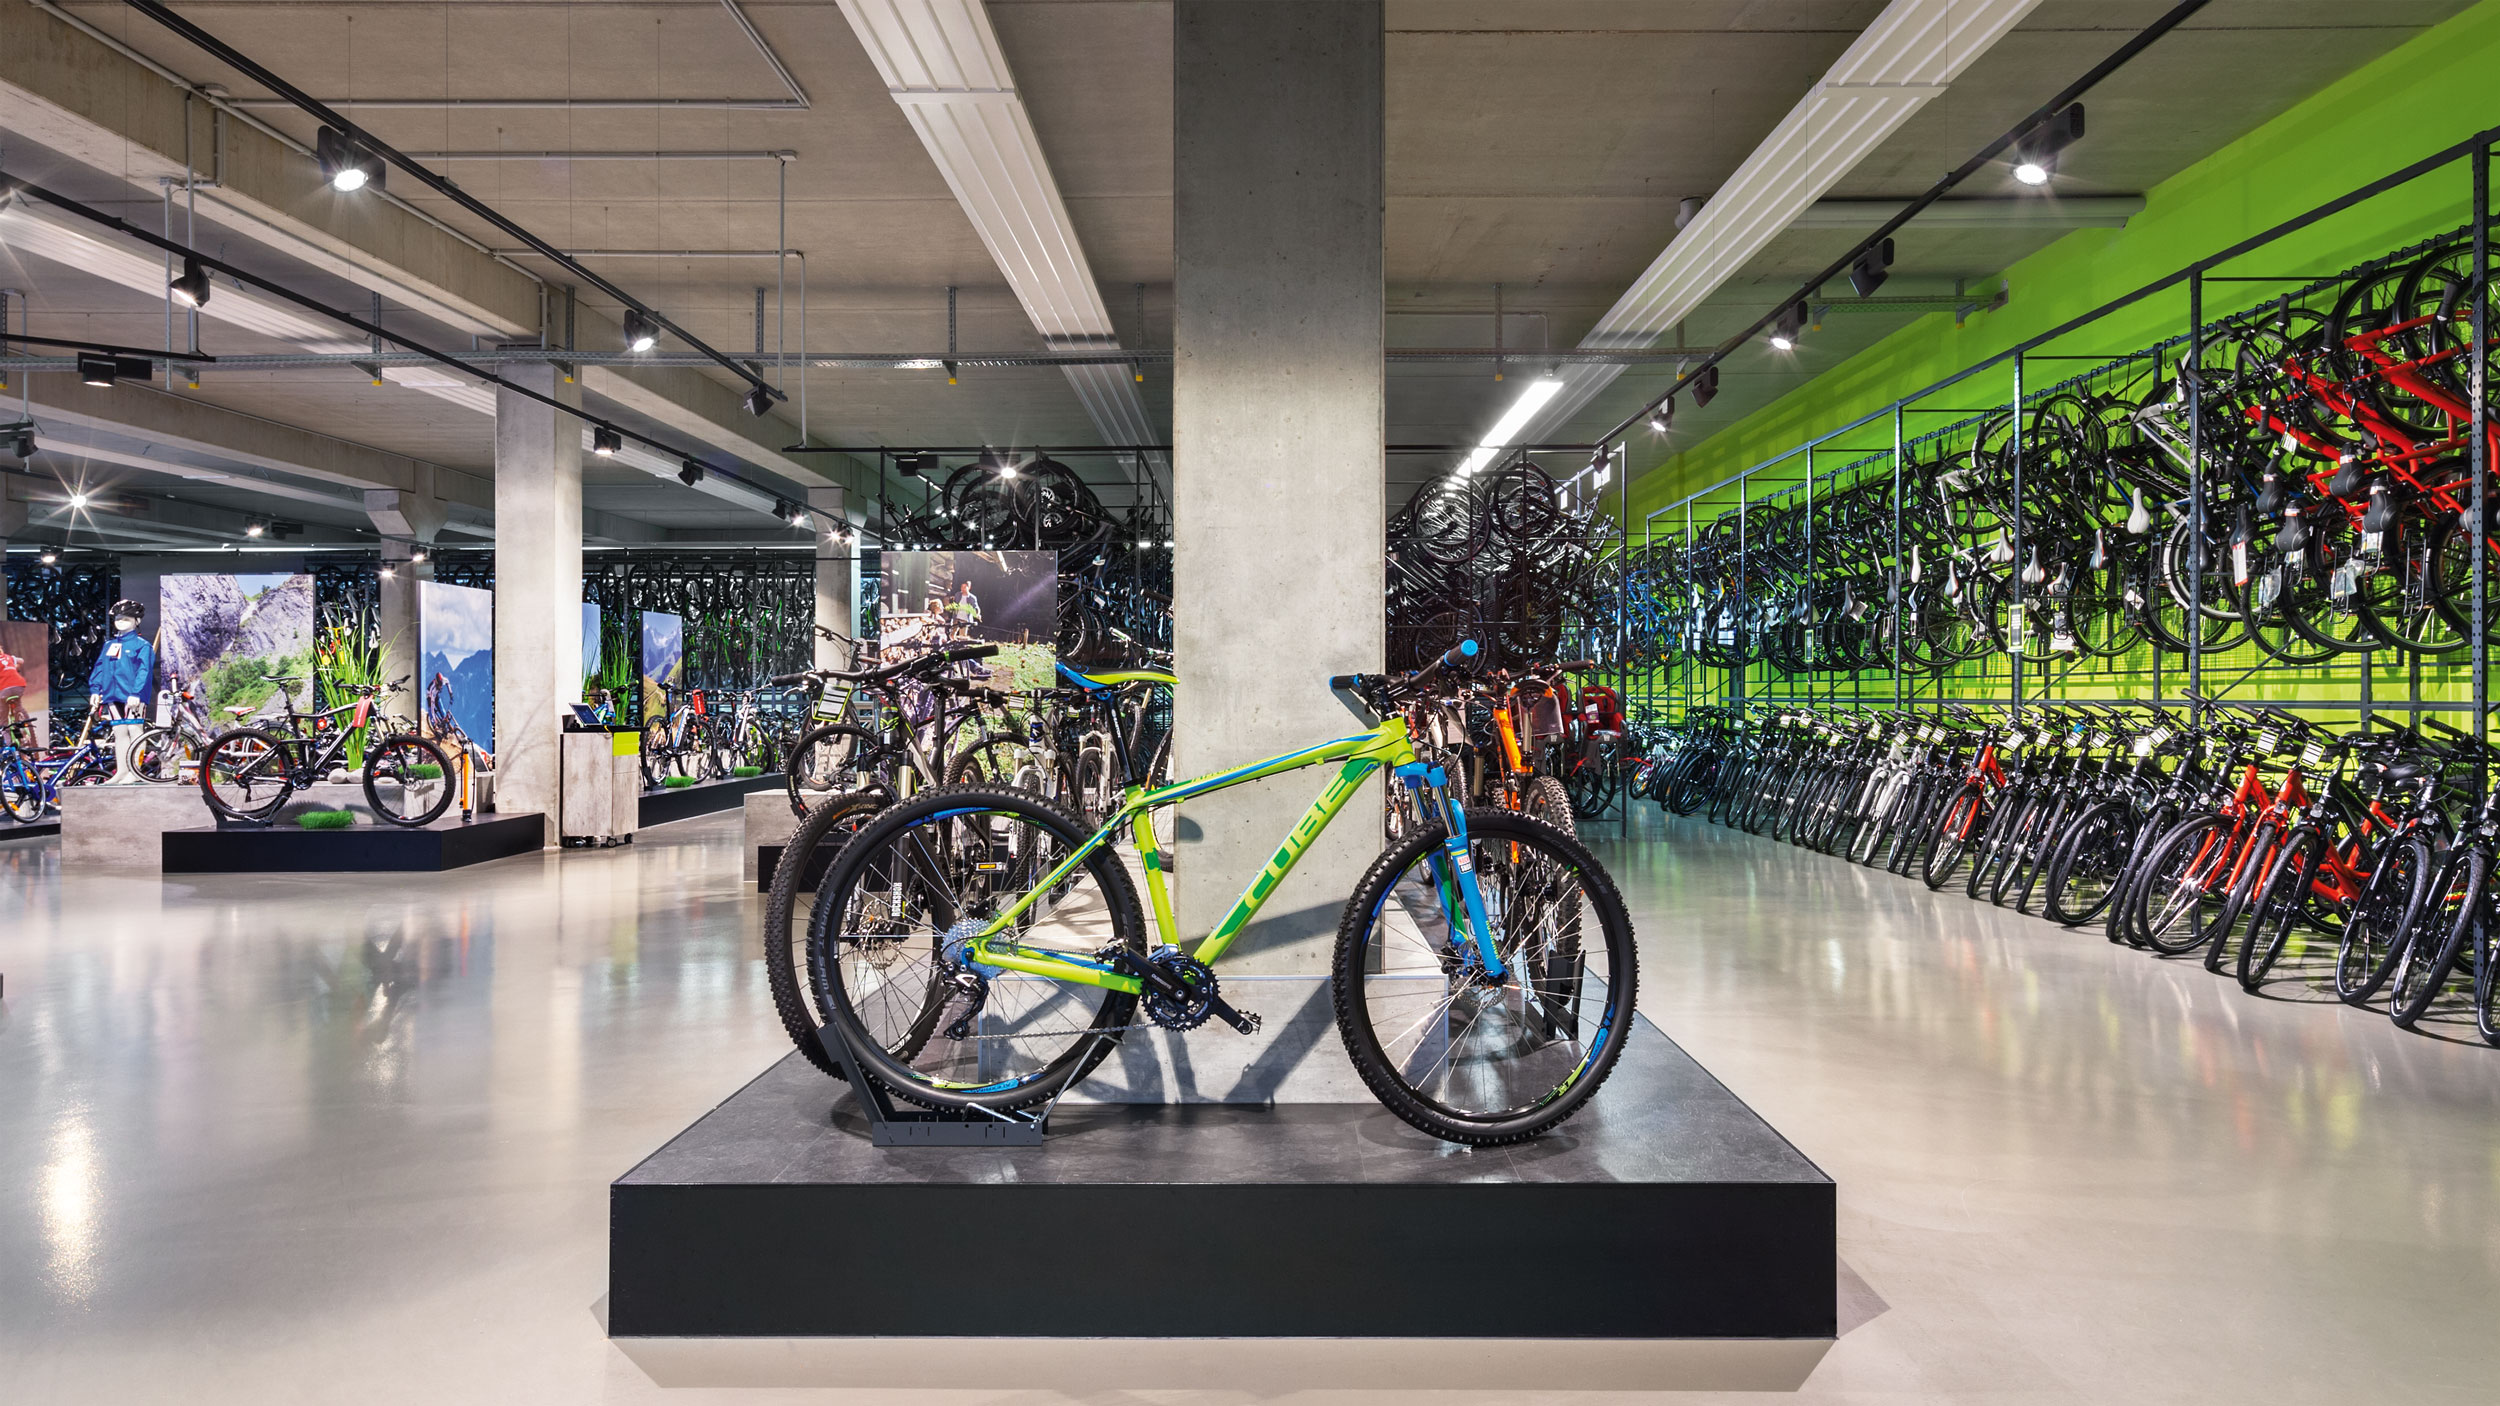 Performance Bicycle sells a variety of high quality bicycles of all types. From mountain bikes to racing bikes, what you need for biking is here including clothing, bicycles, accessories, bike tools, and more.